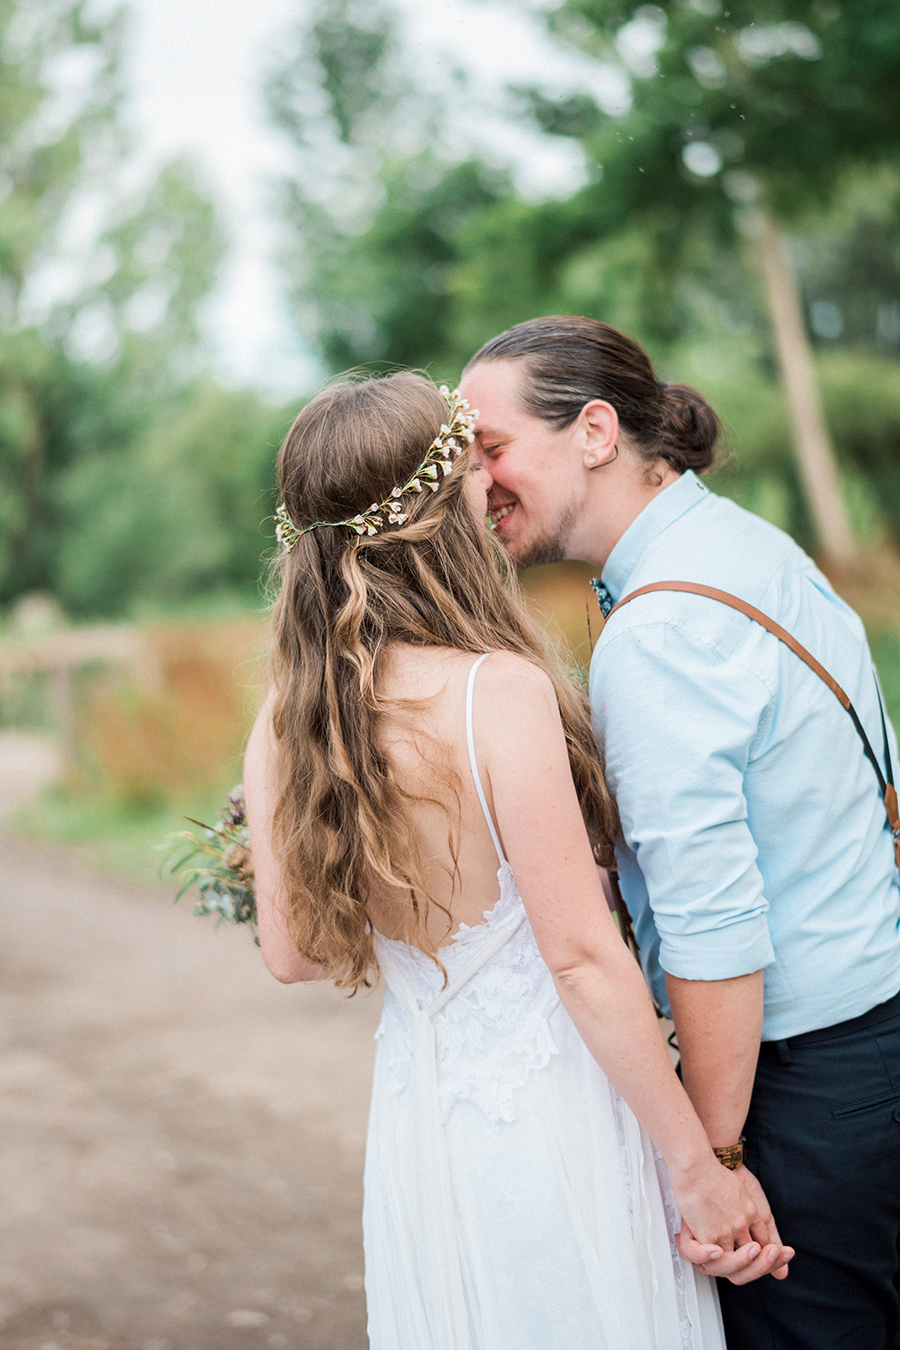 Dreamy boho wedding at Houchins Farm with images by Kathryn Hopkins Photography (30)